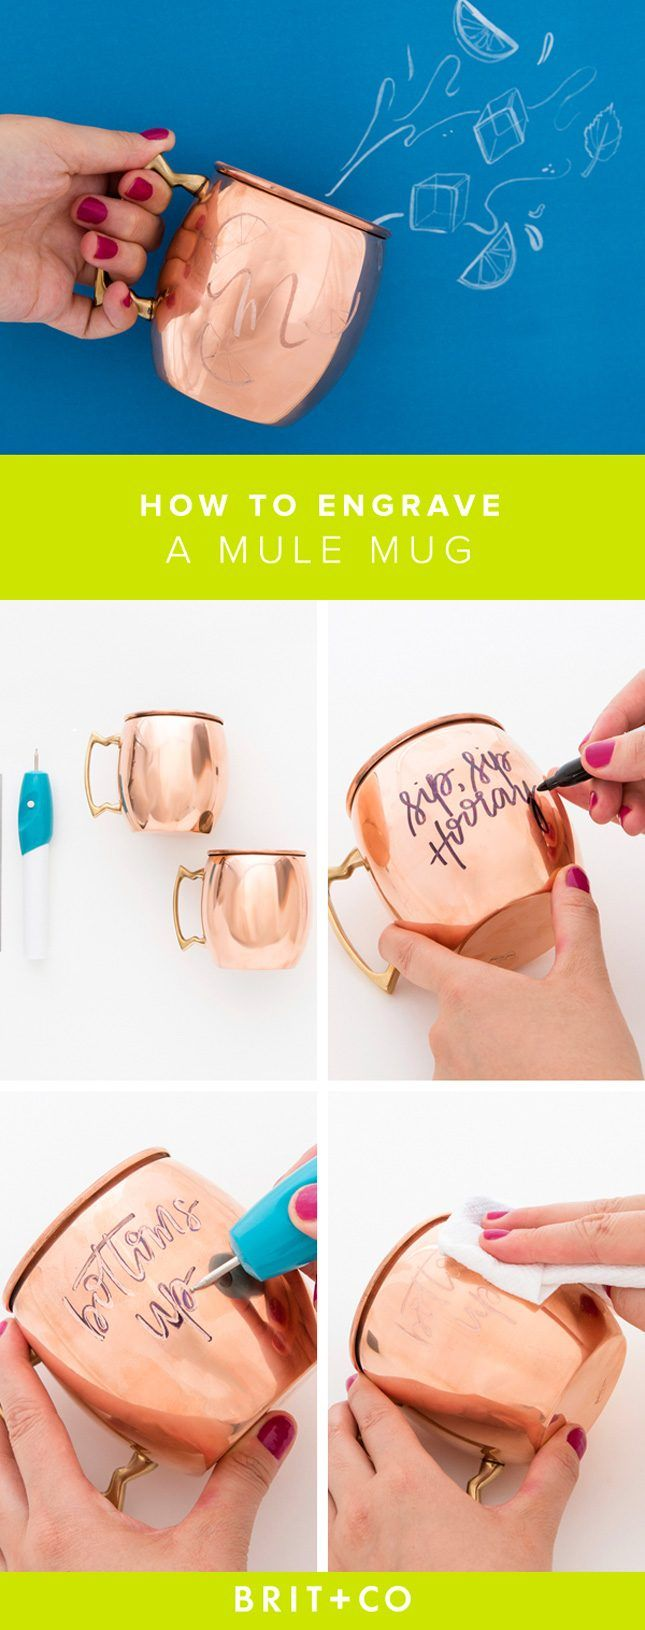 engrave a copper mule mug to make a special customized gift for a friend or a hostess